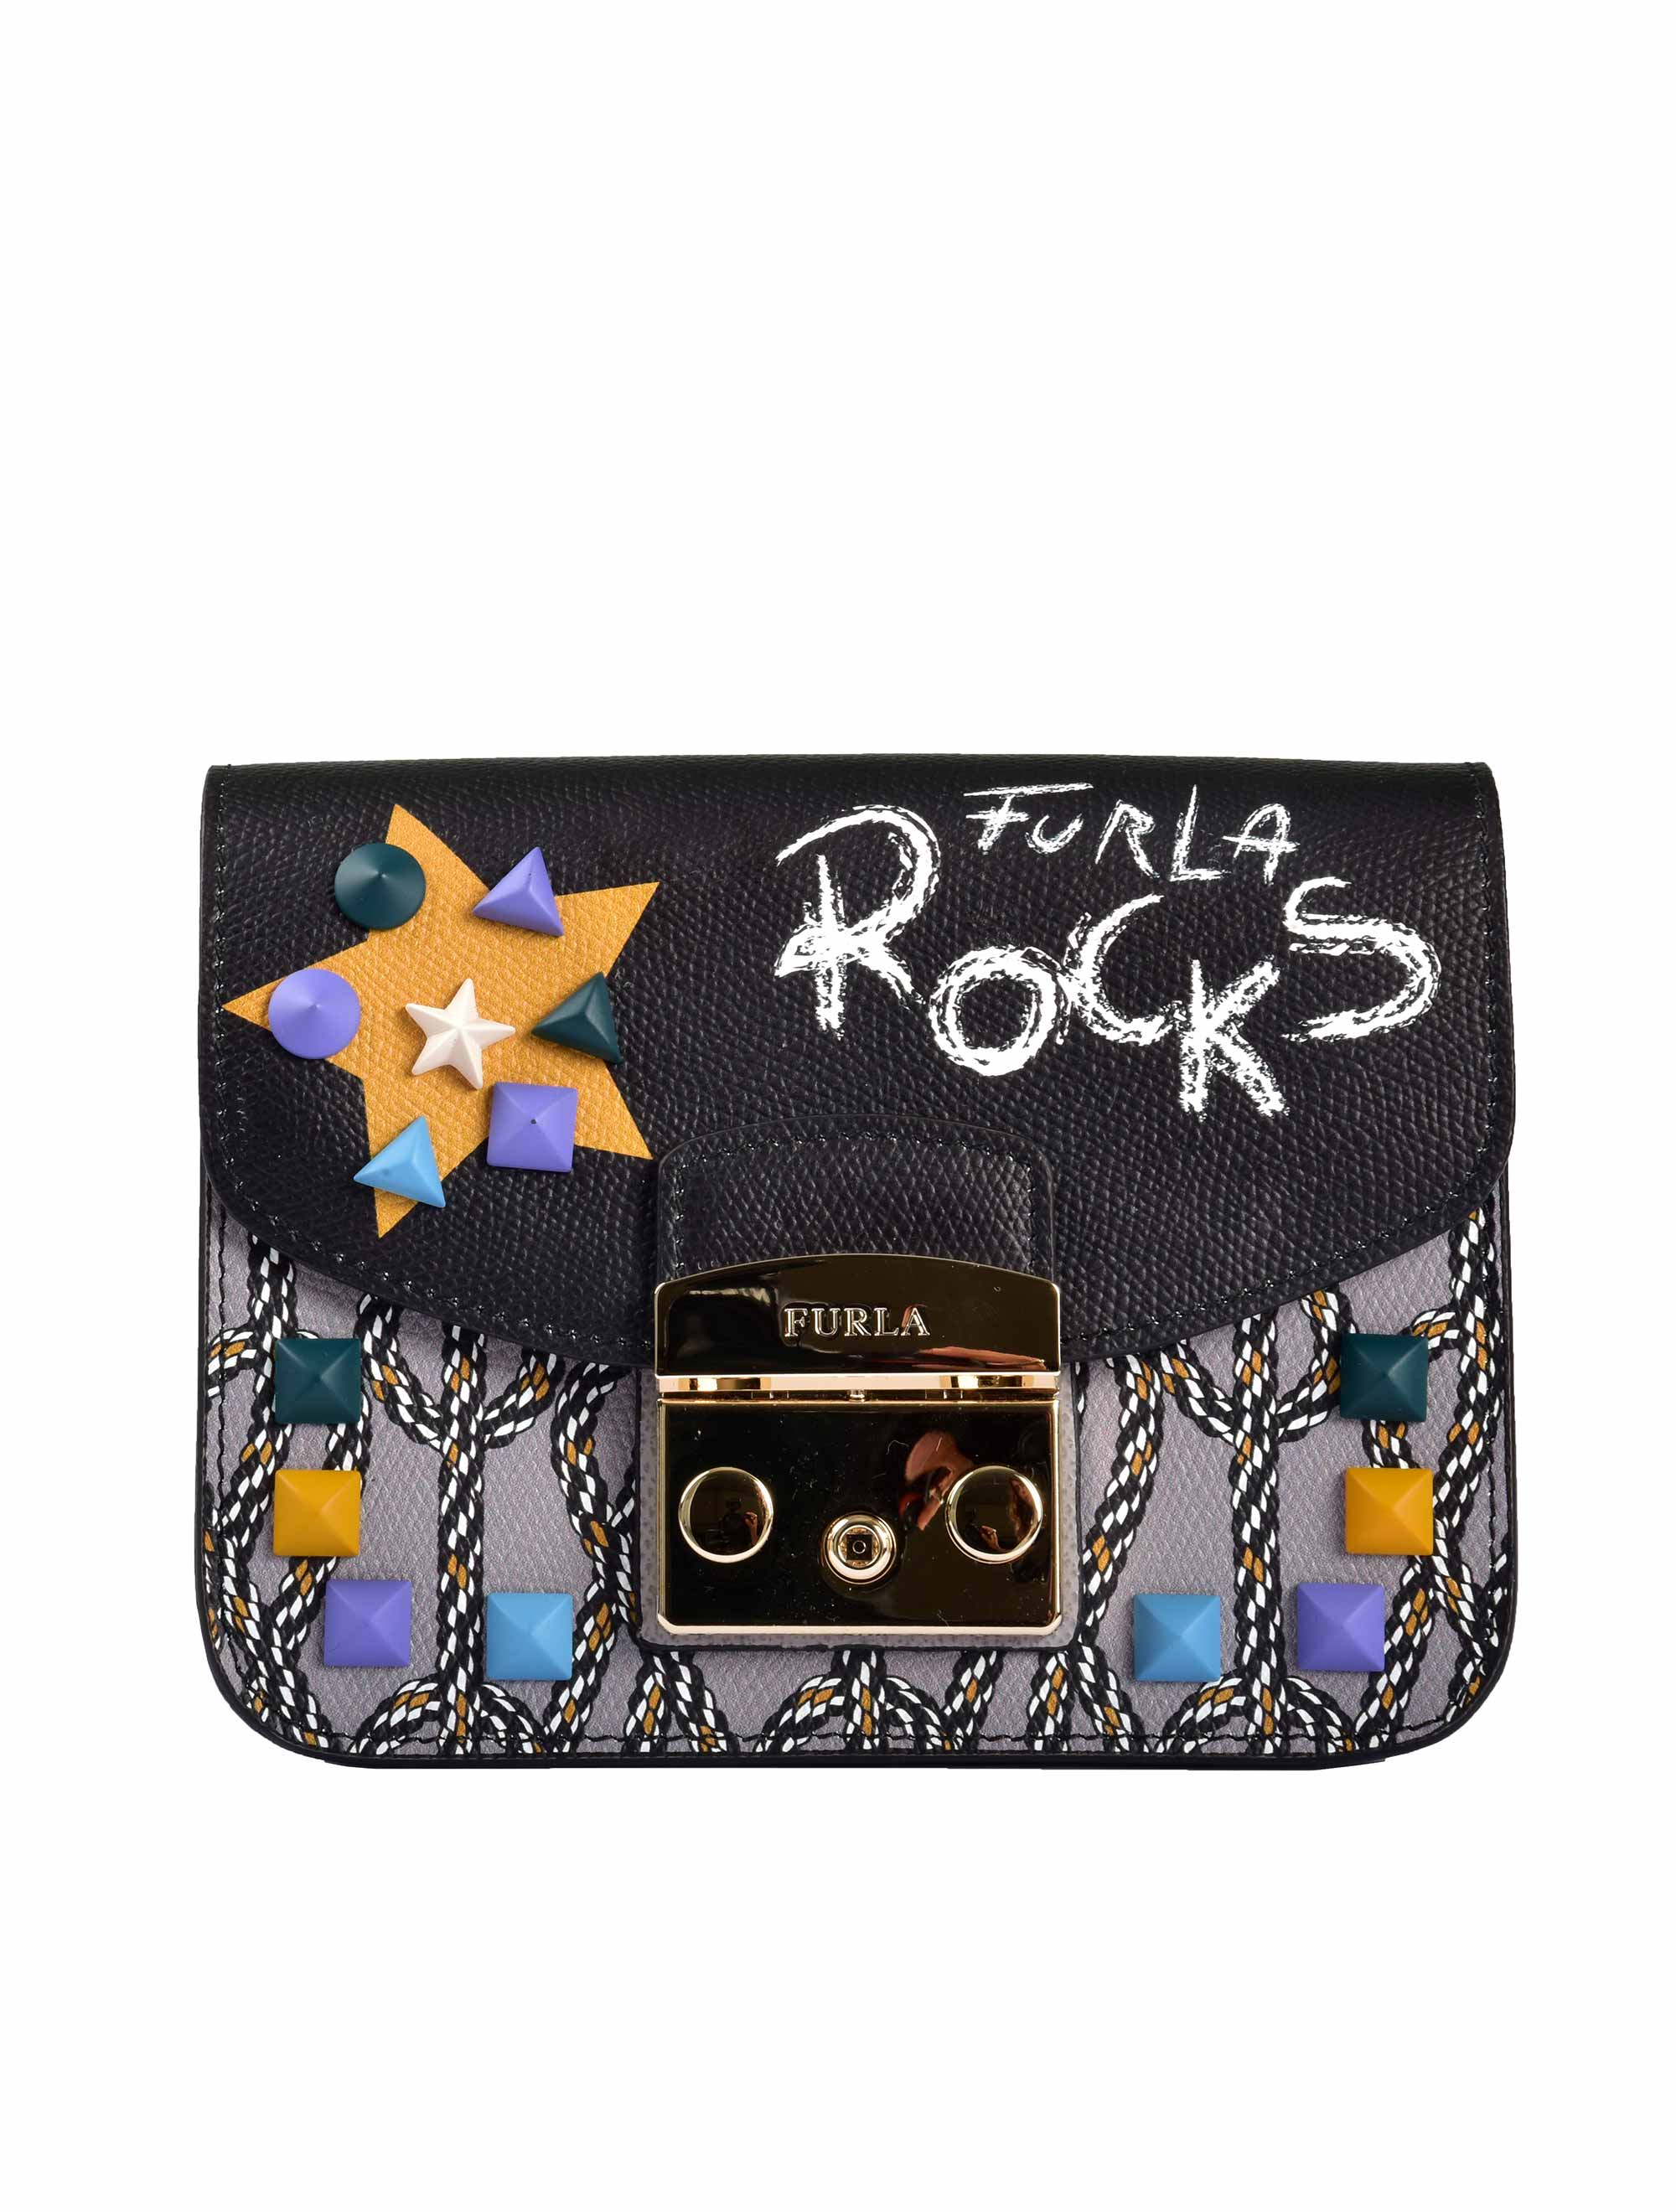 d3f5a324e776 Mimma Ninni – Luxury and Fashion Shopping. Furla Message Mini ...